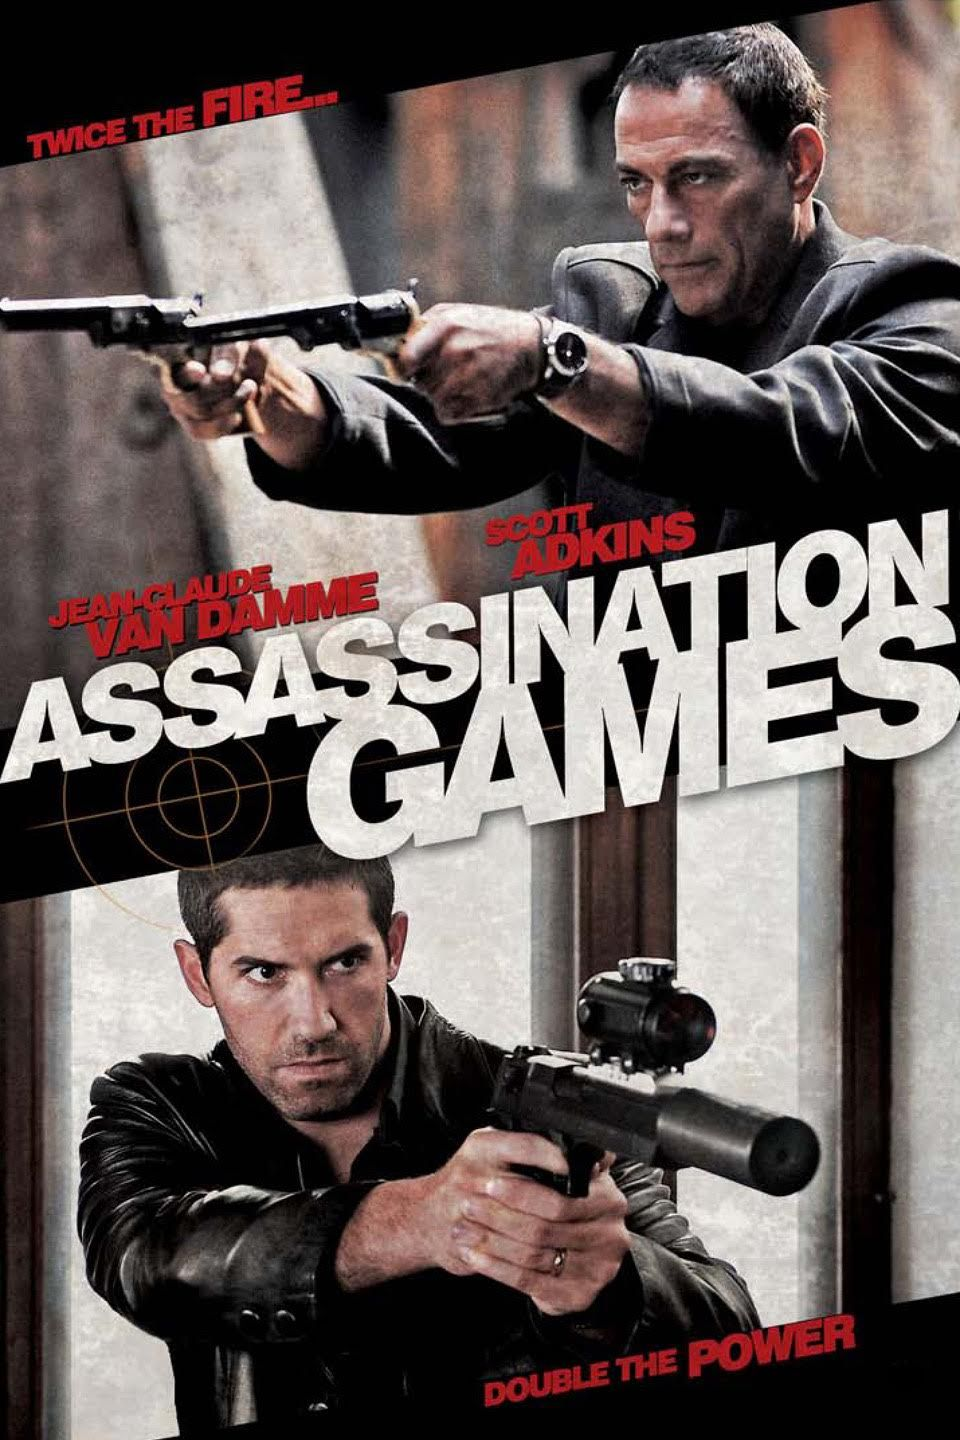 Assassination Games Full Movies Online Free Scott Adkins Free Movies Online